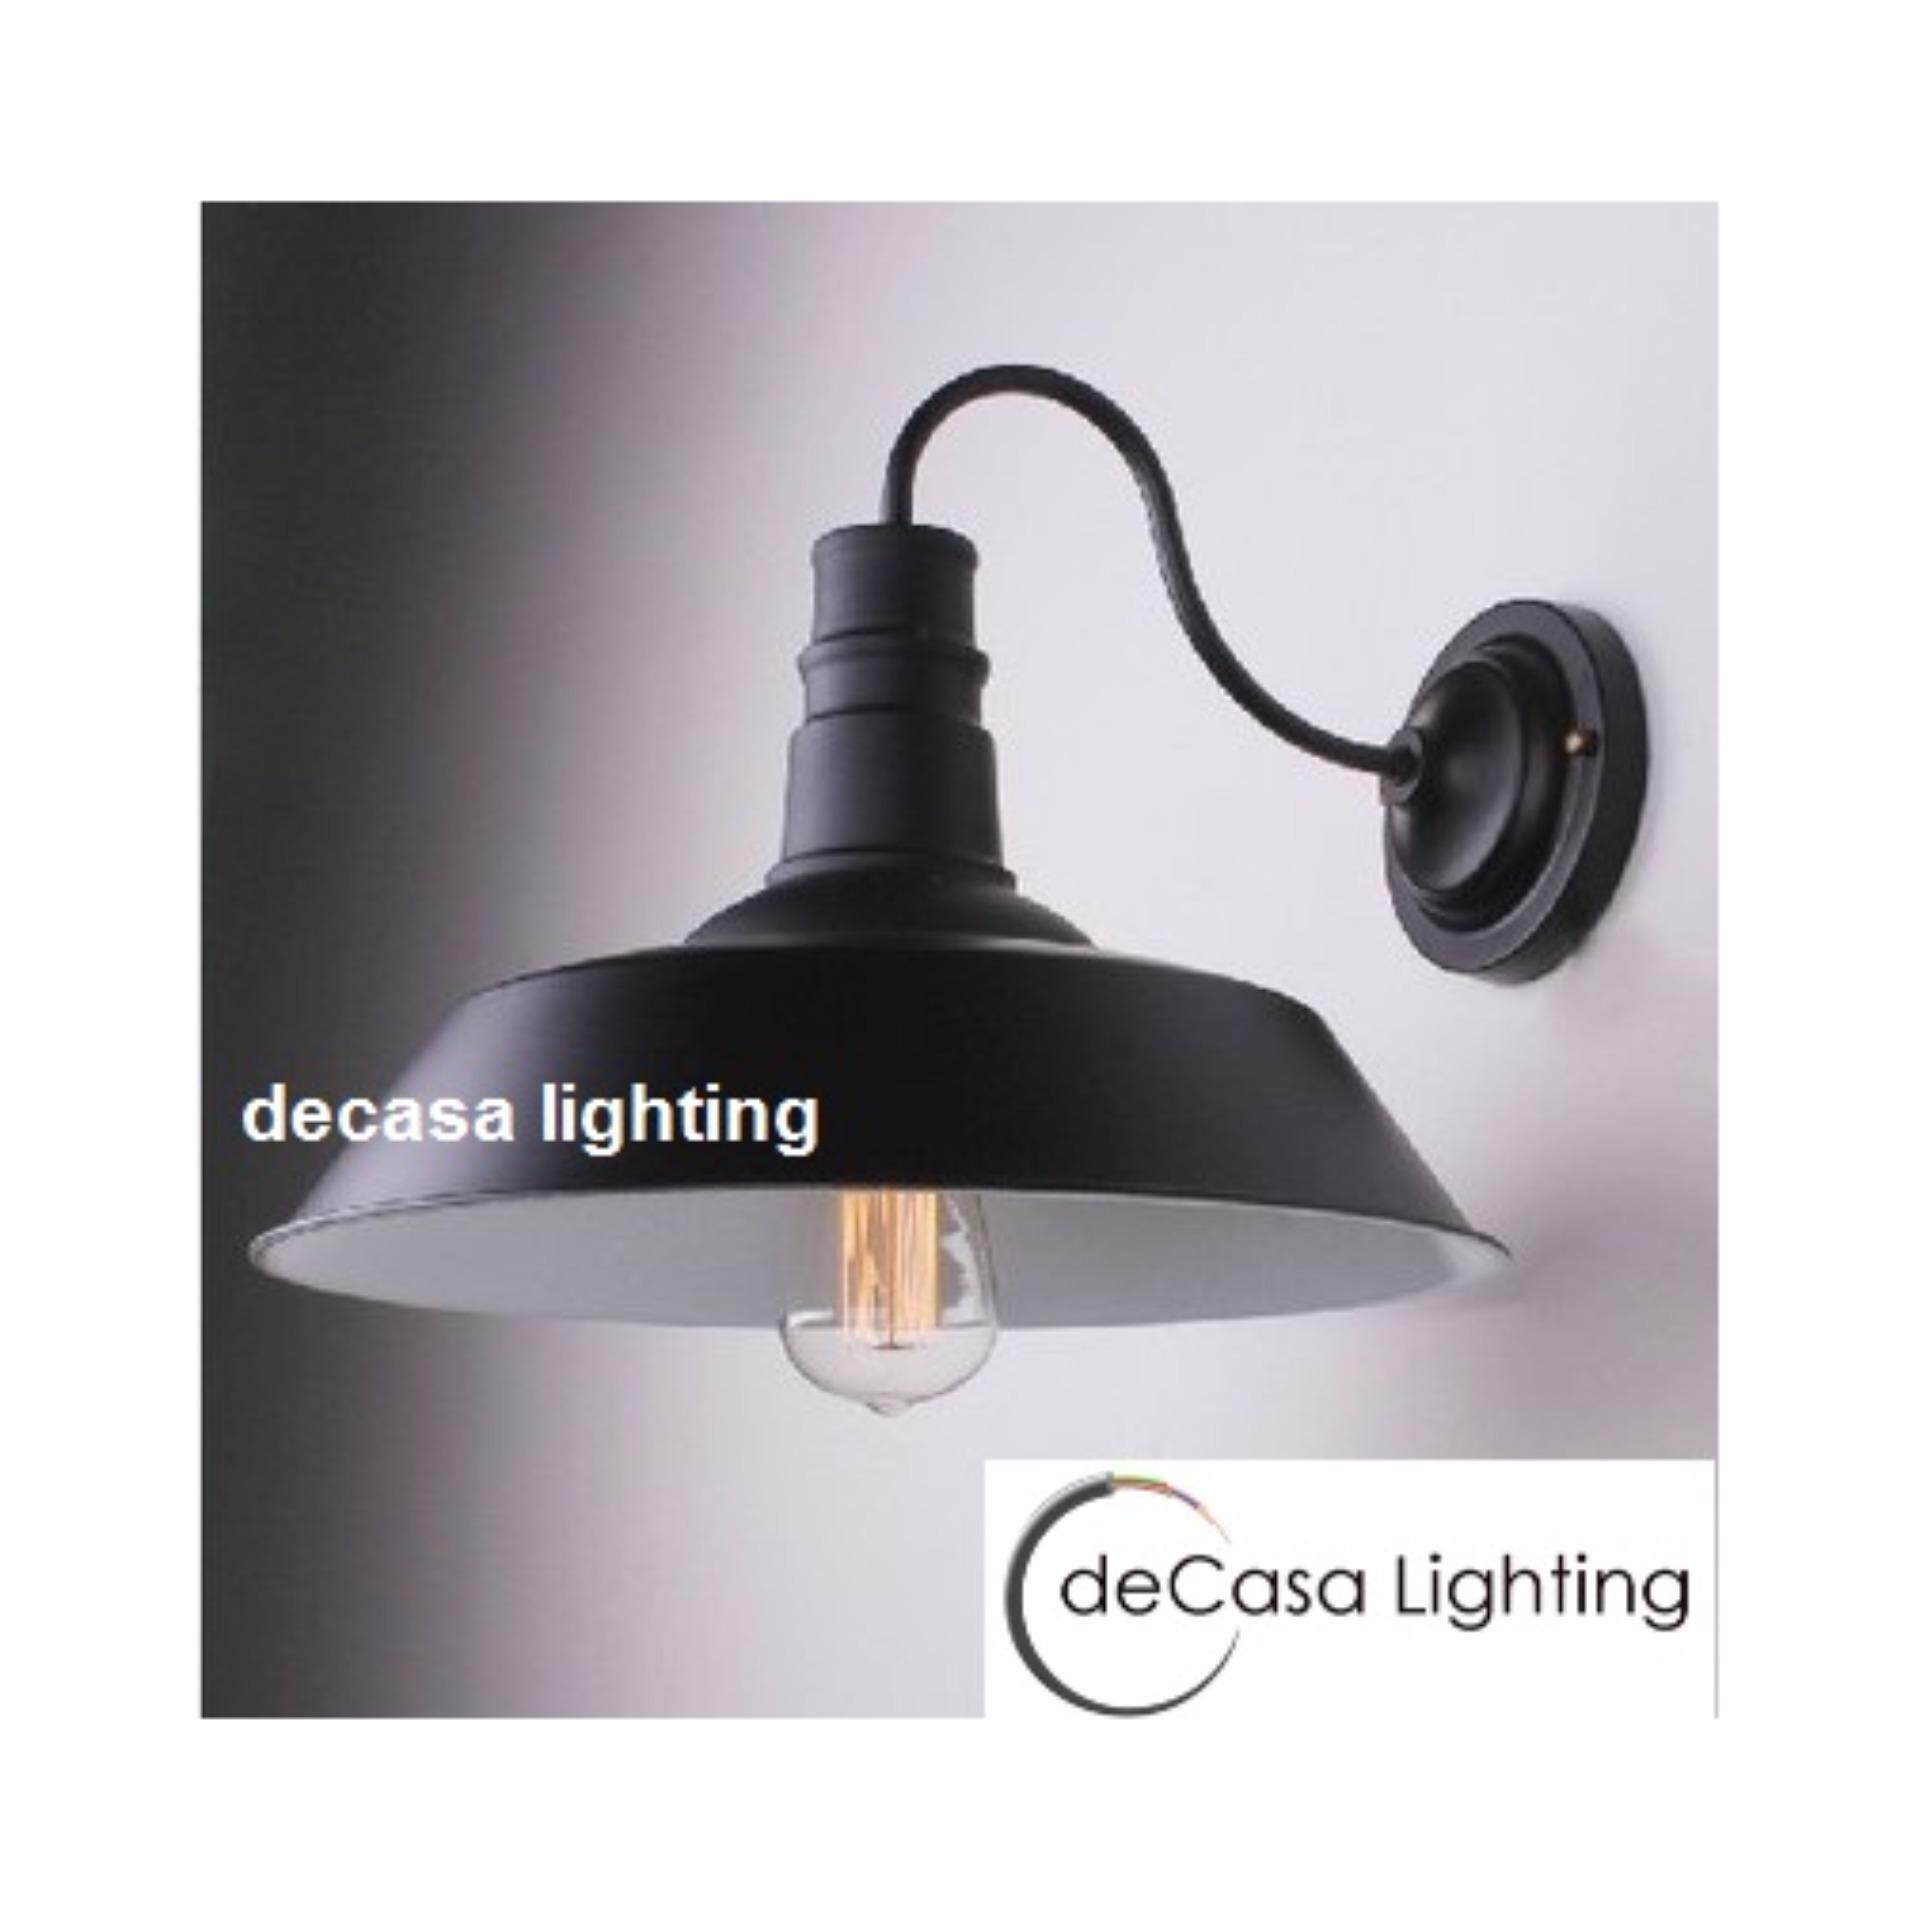 Decasa Lighting Best Seller Decorative Wall Lights (Black) DECASA WALL LIGHT (LY-RQY-011)